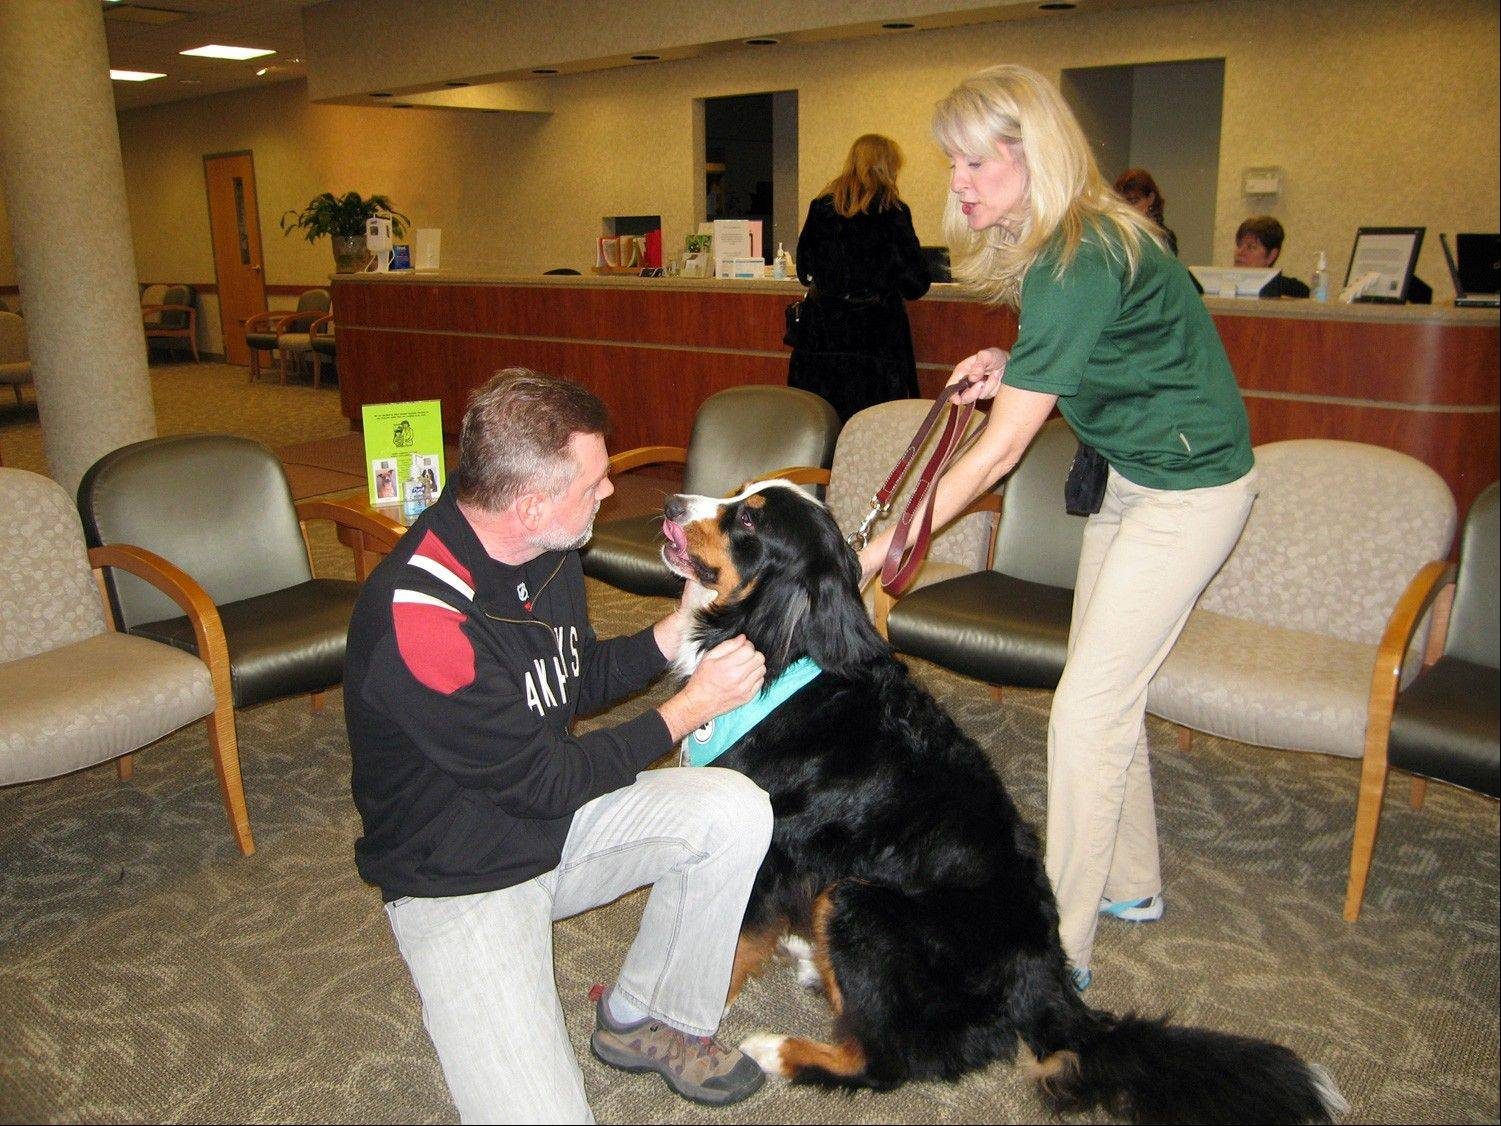 Jasper, a therapy dog, welcomes a patient at the NCH Medical Group office in Arlington Heights.